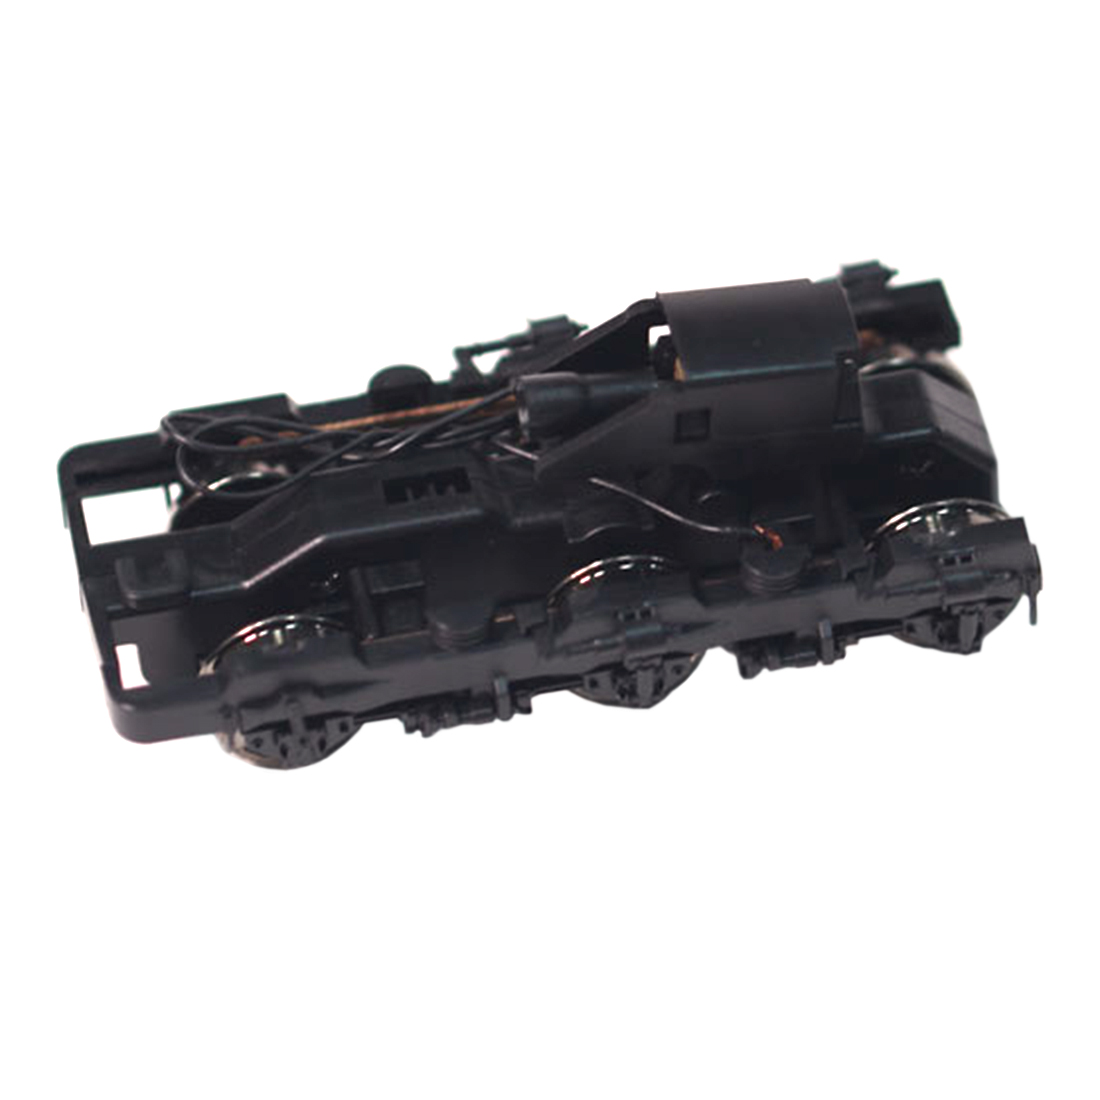 2.8 X 6.8cm 1:87 HO Scale Railway Layou Undercarriage Bogie For Most HO Scale Model Train Model Building Kits